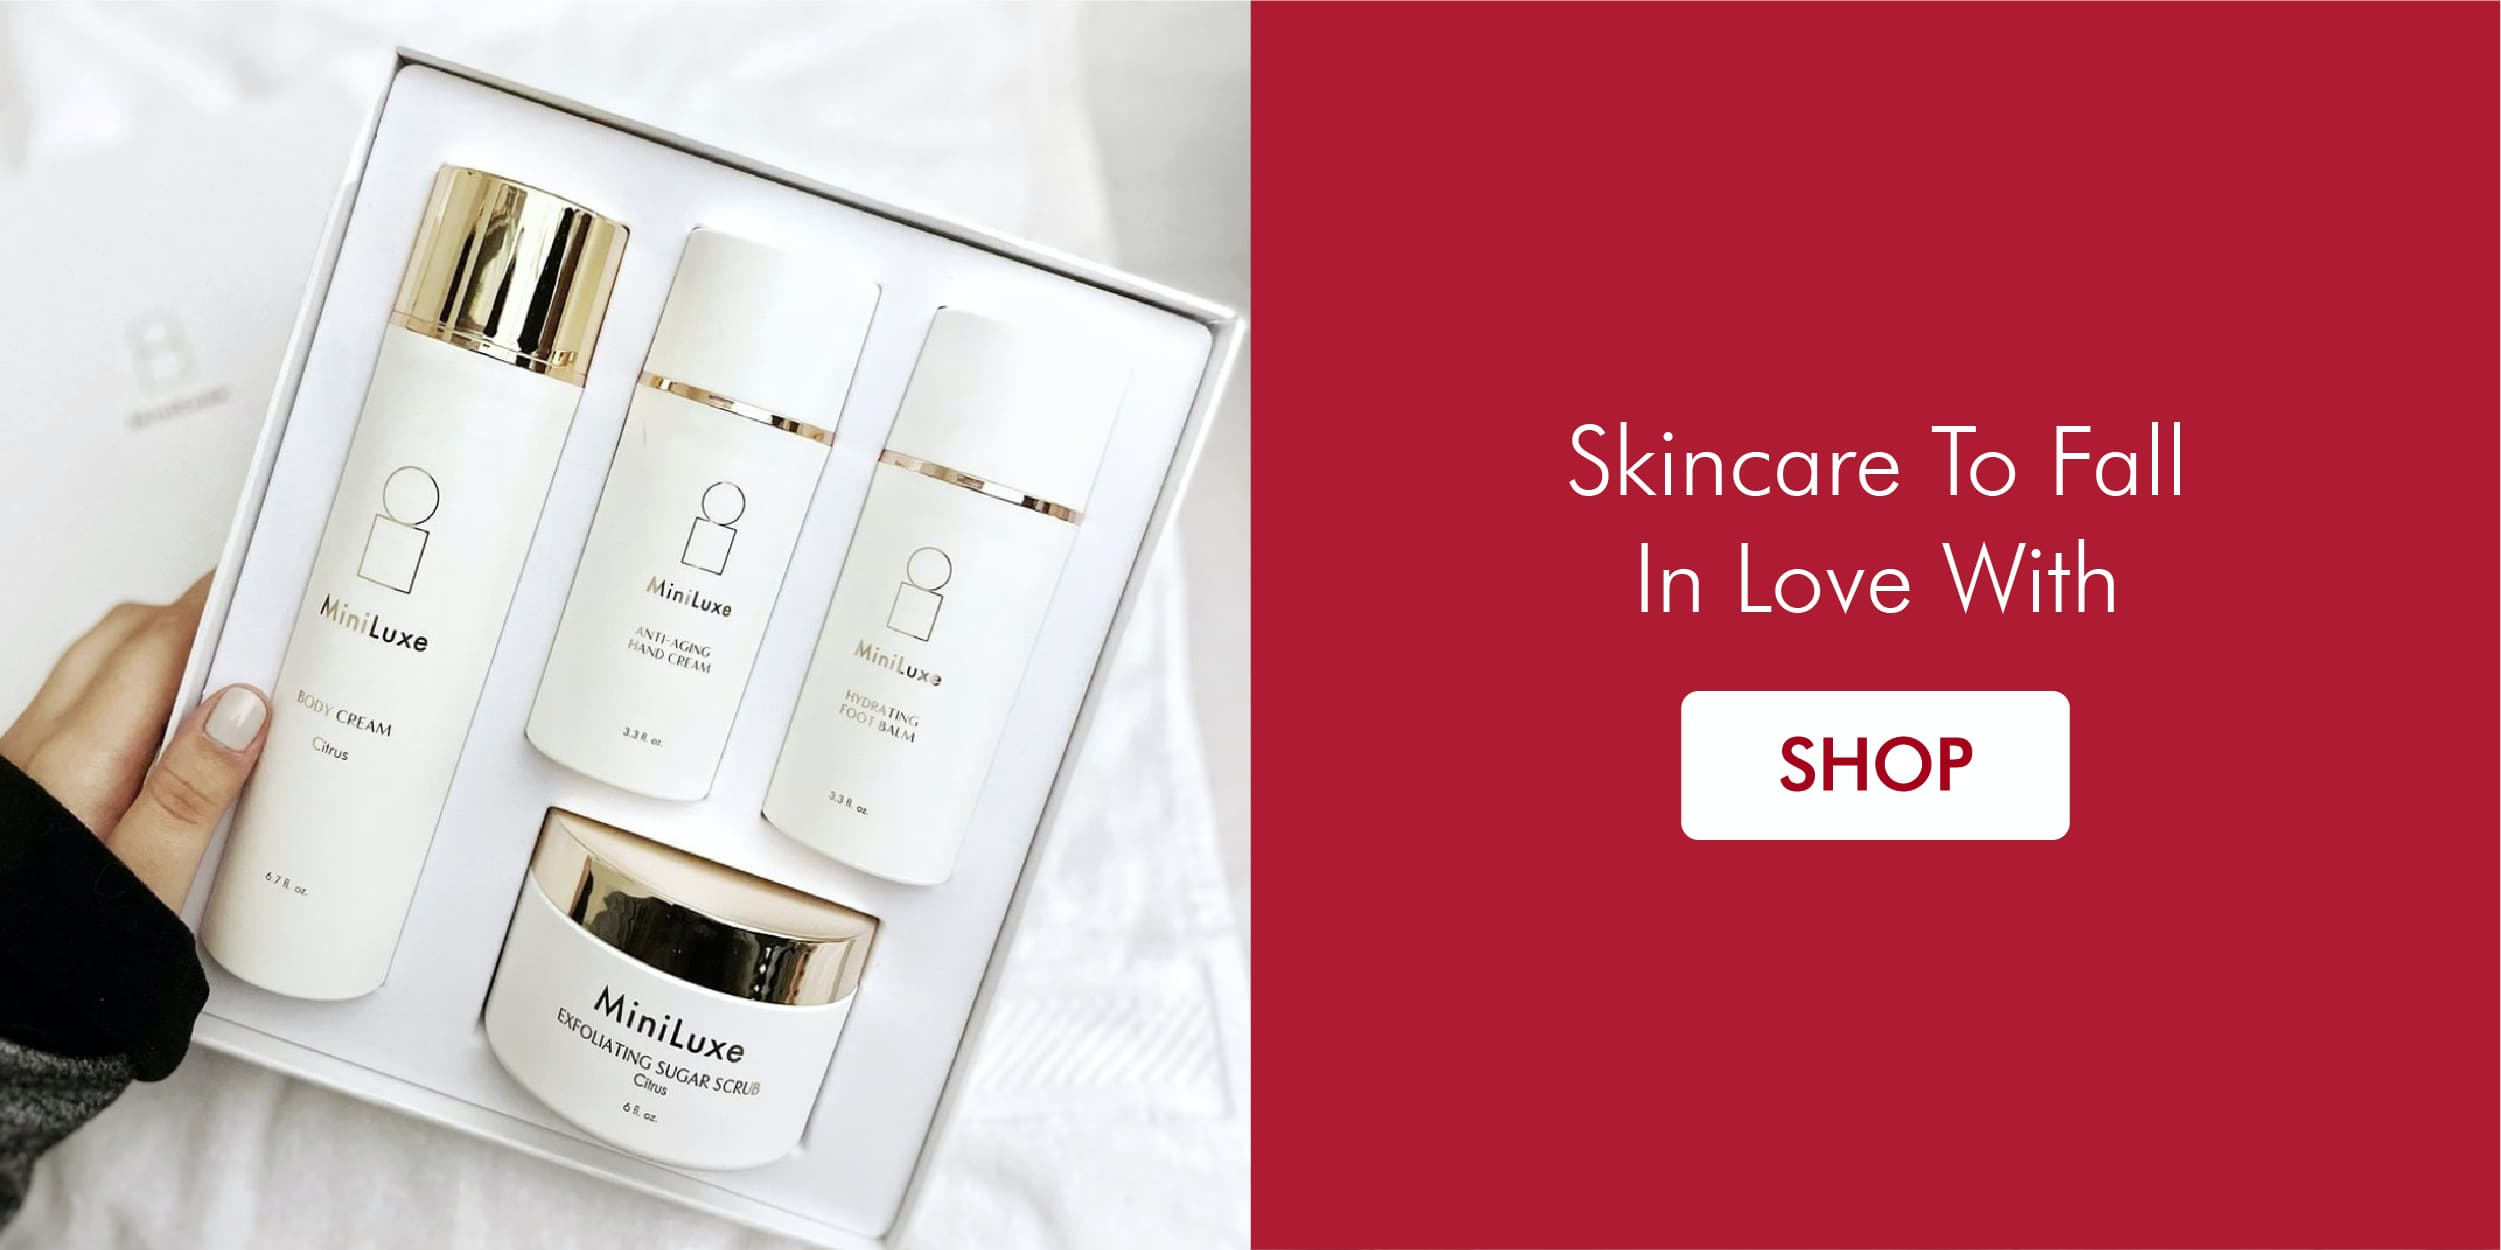 Skincare To Fall In Love With